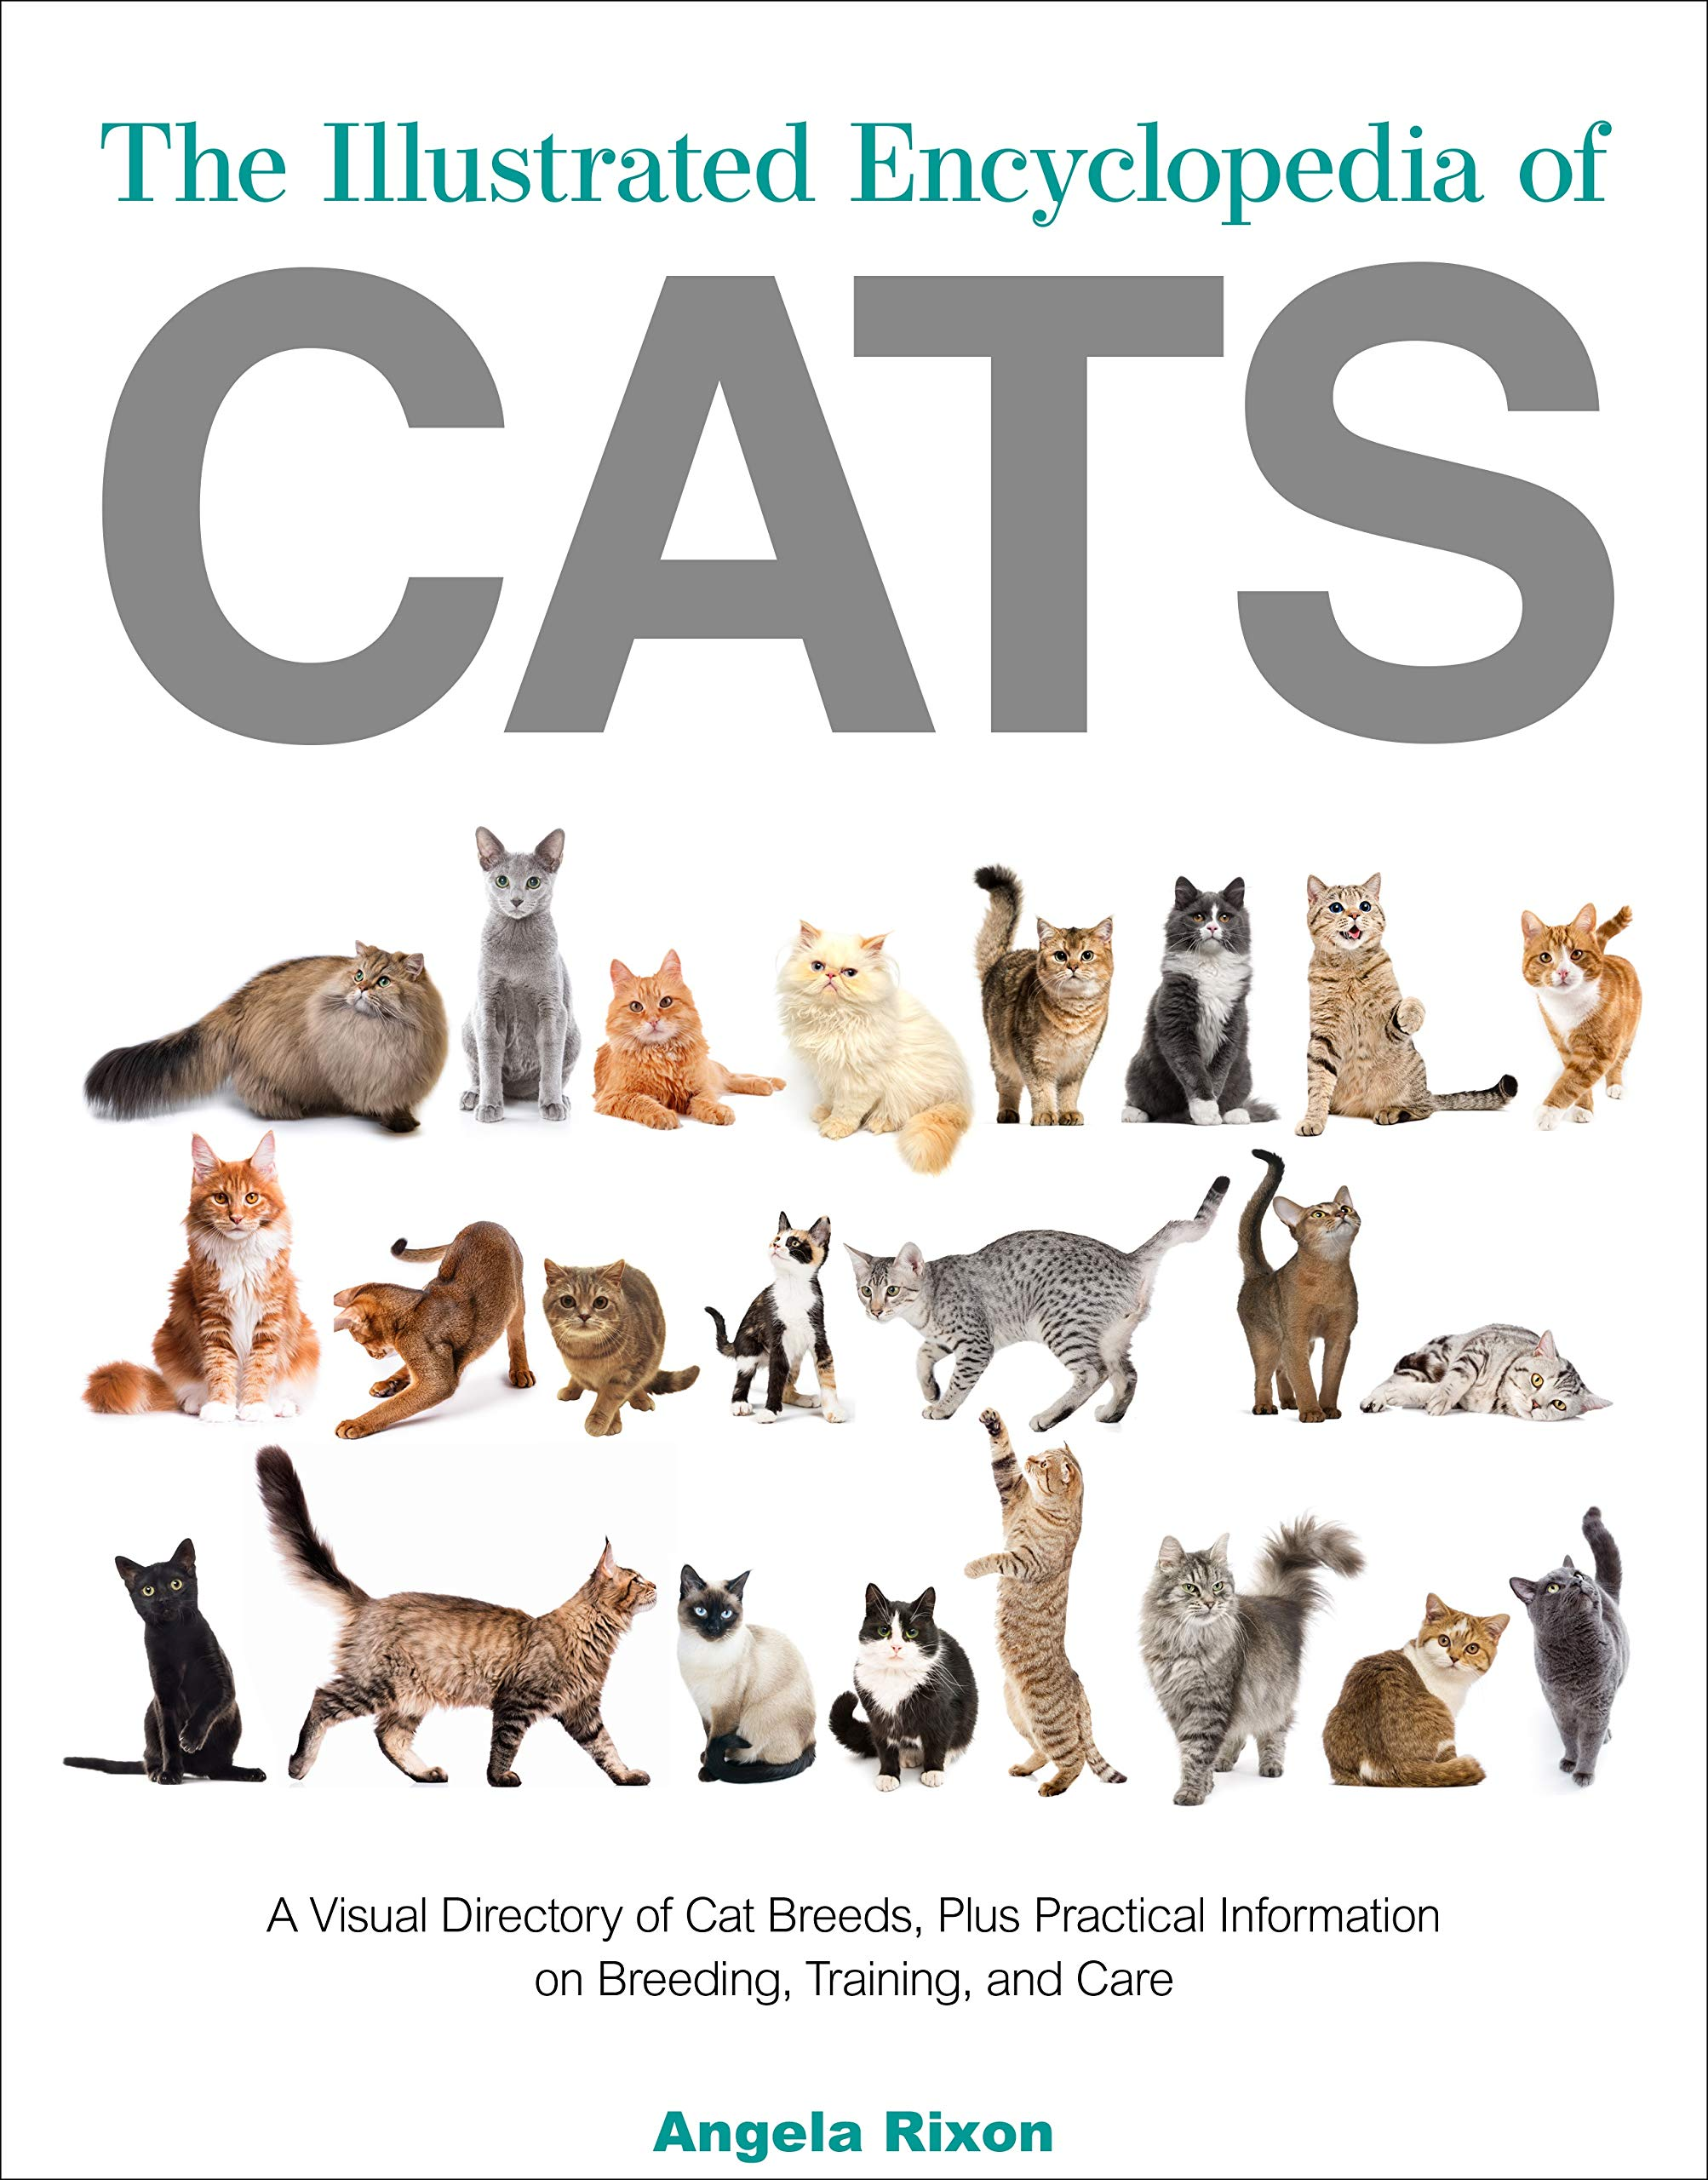 The Illustrated Encyclopedia Of Cats A Comprehensive Visual Directory Of All The World S Cat Breeds Plus Invaluable Practical Information On Breeding Training Care And Showing Rixon Angela 9780785838296 Amazon Com Books